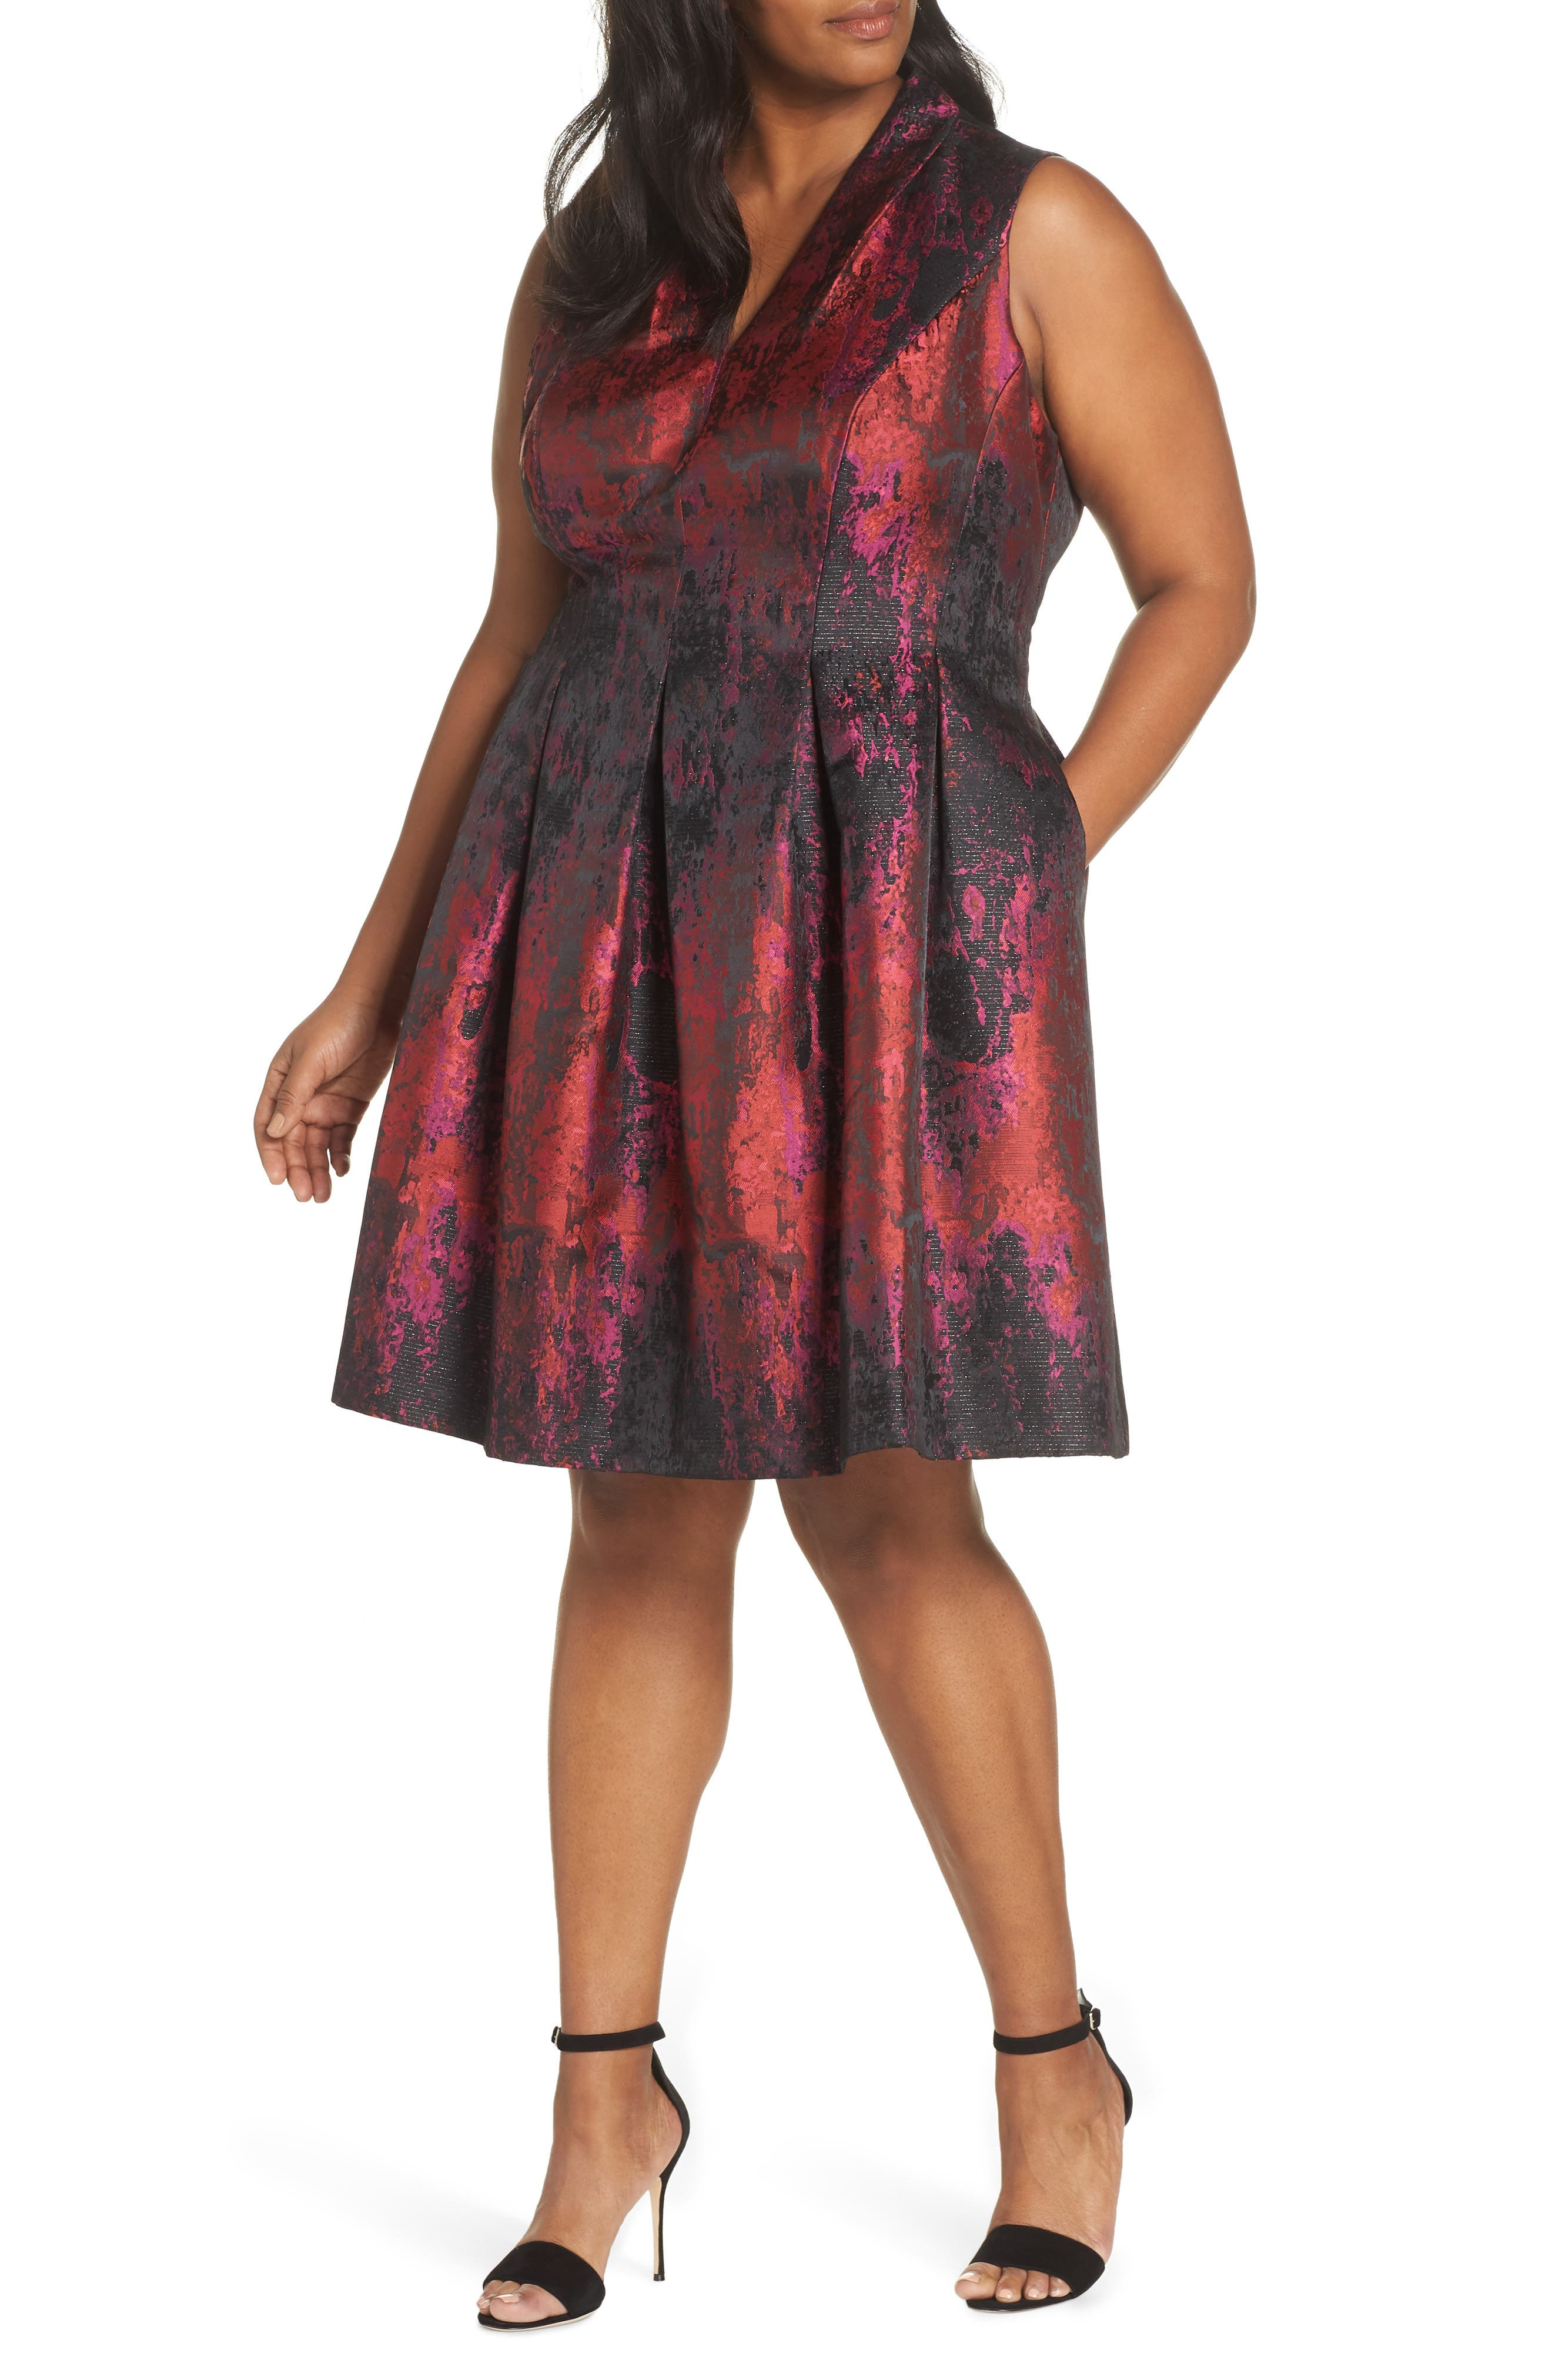 Plus Size Vince Camuto Sleeveless Jacquard Fit & Flare Dress, Pink